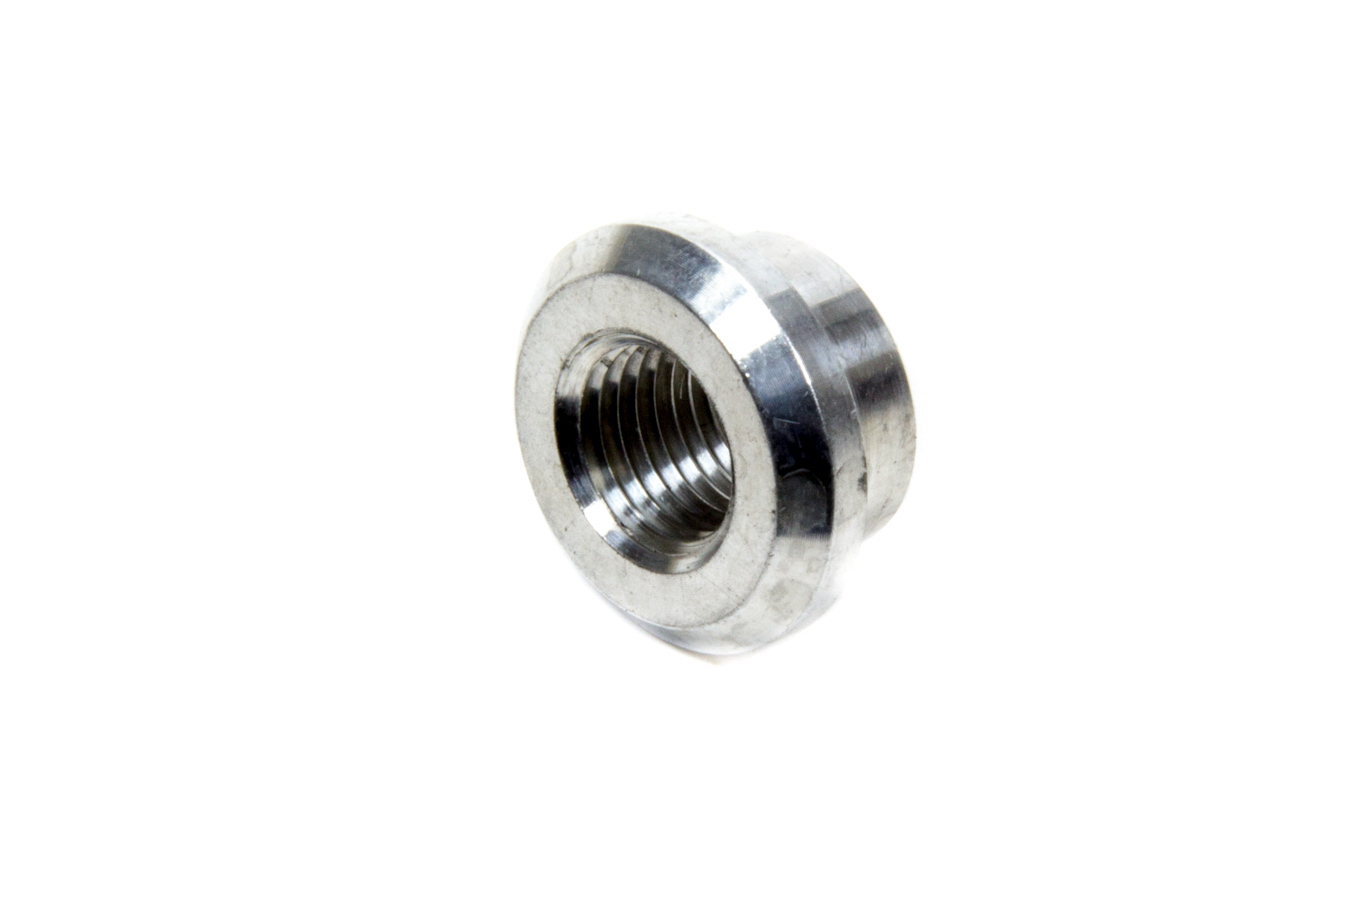 XRP 996802 Bung, 1/4 in NPT Female, Weld-On, Recessed Flange, Aluminum, Natural, Each